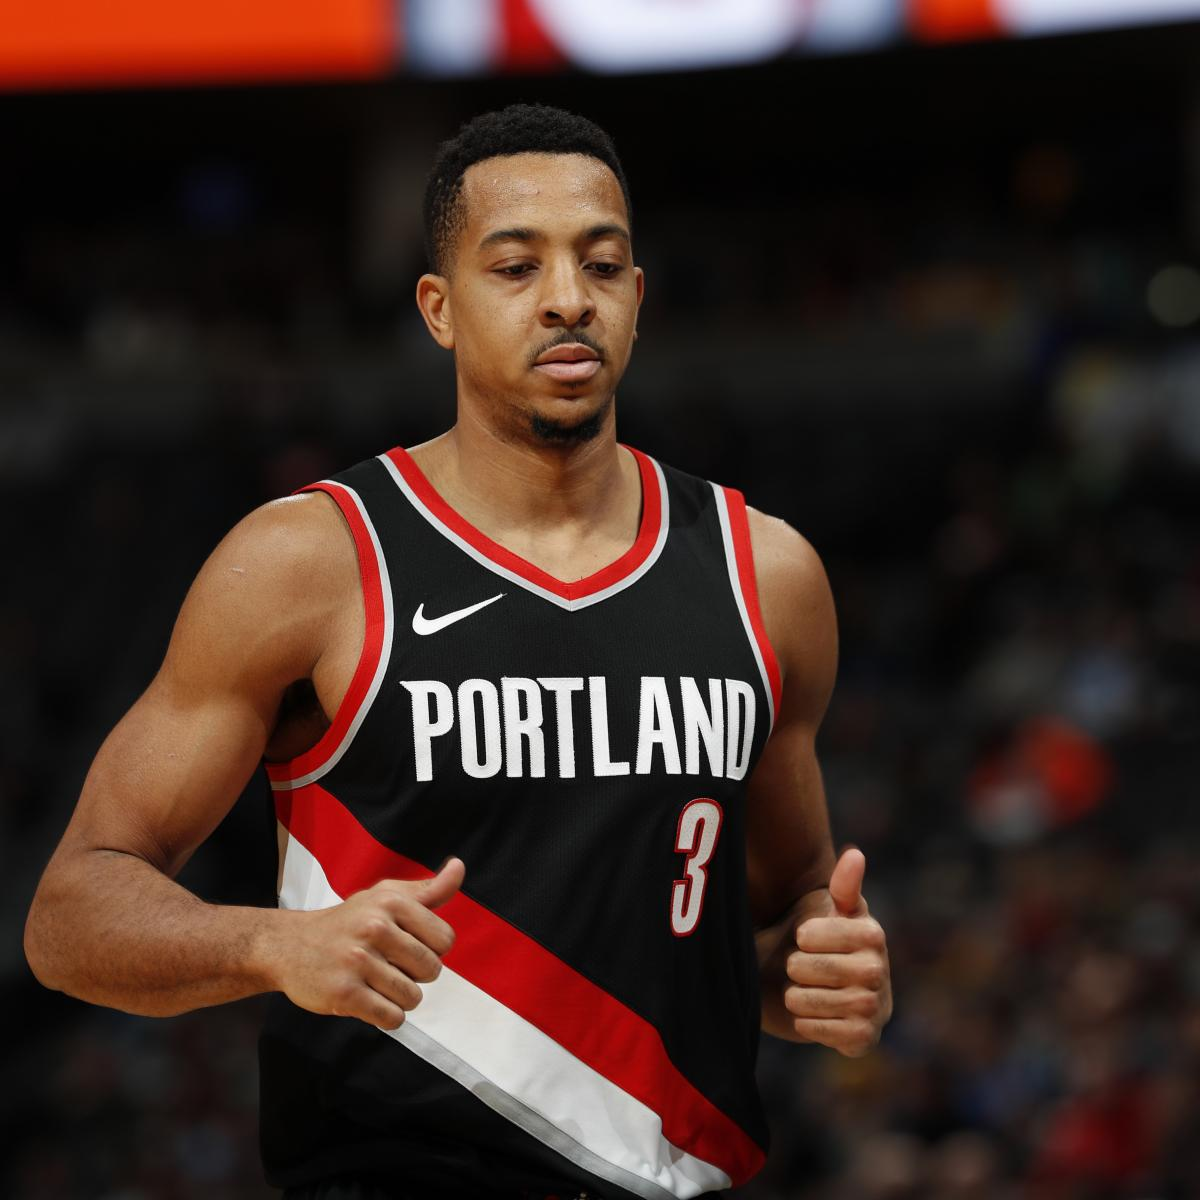 Portland Blazers Schedule: CJ McCollum Drops 50 Points As Trail Blazers Rout Bulls